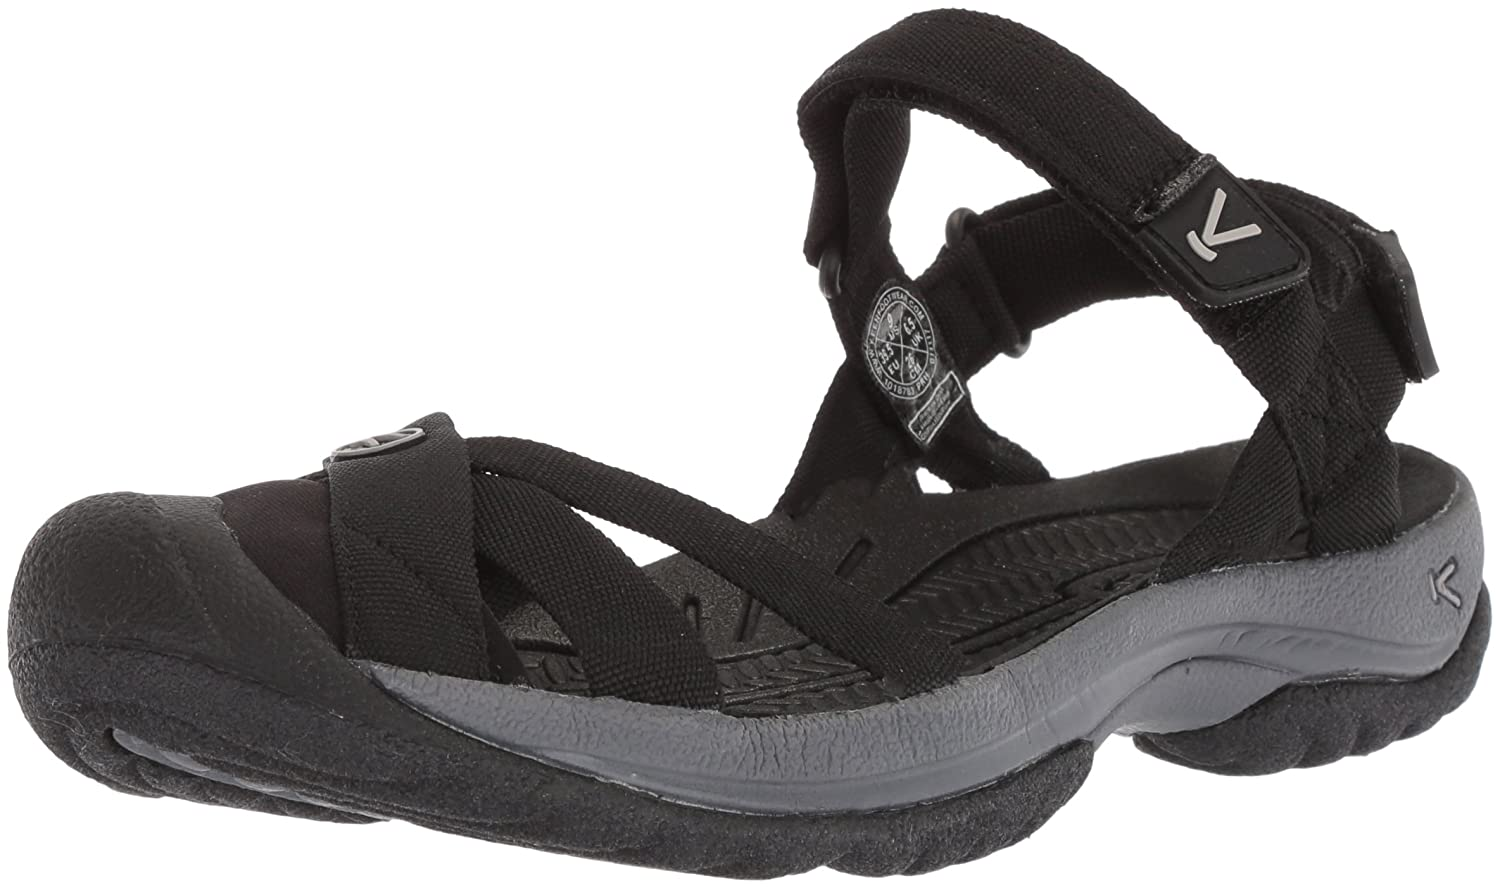 3530c2d18258ff Amazon.com  KEEN Women s Bali Strap Sandal  Shoes